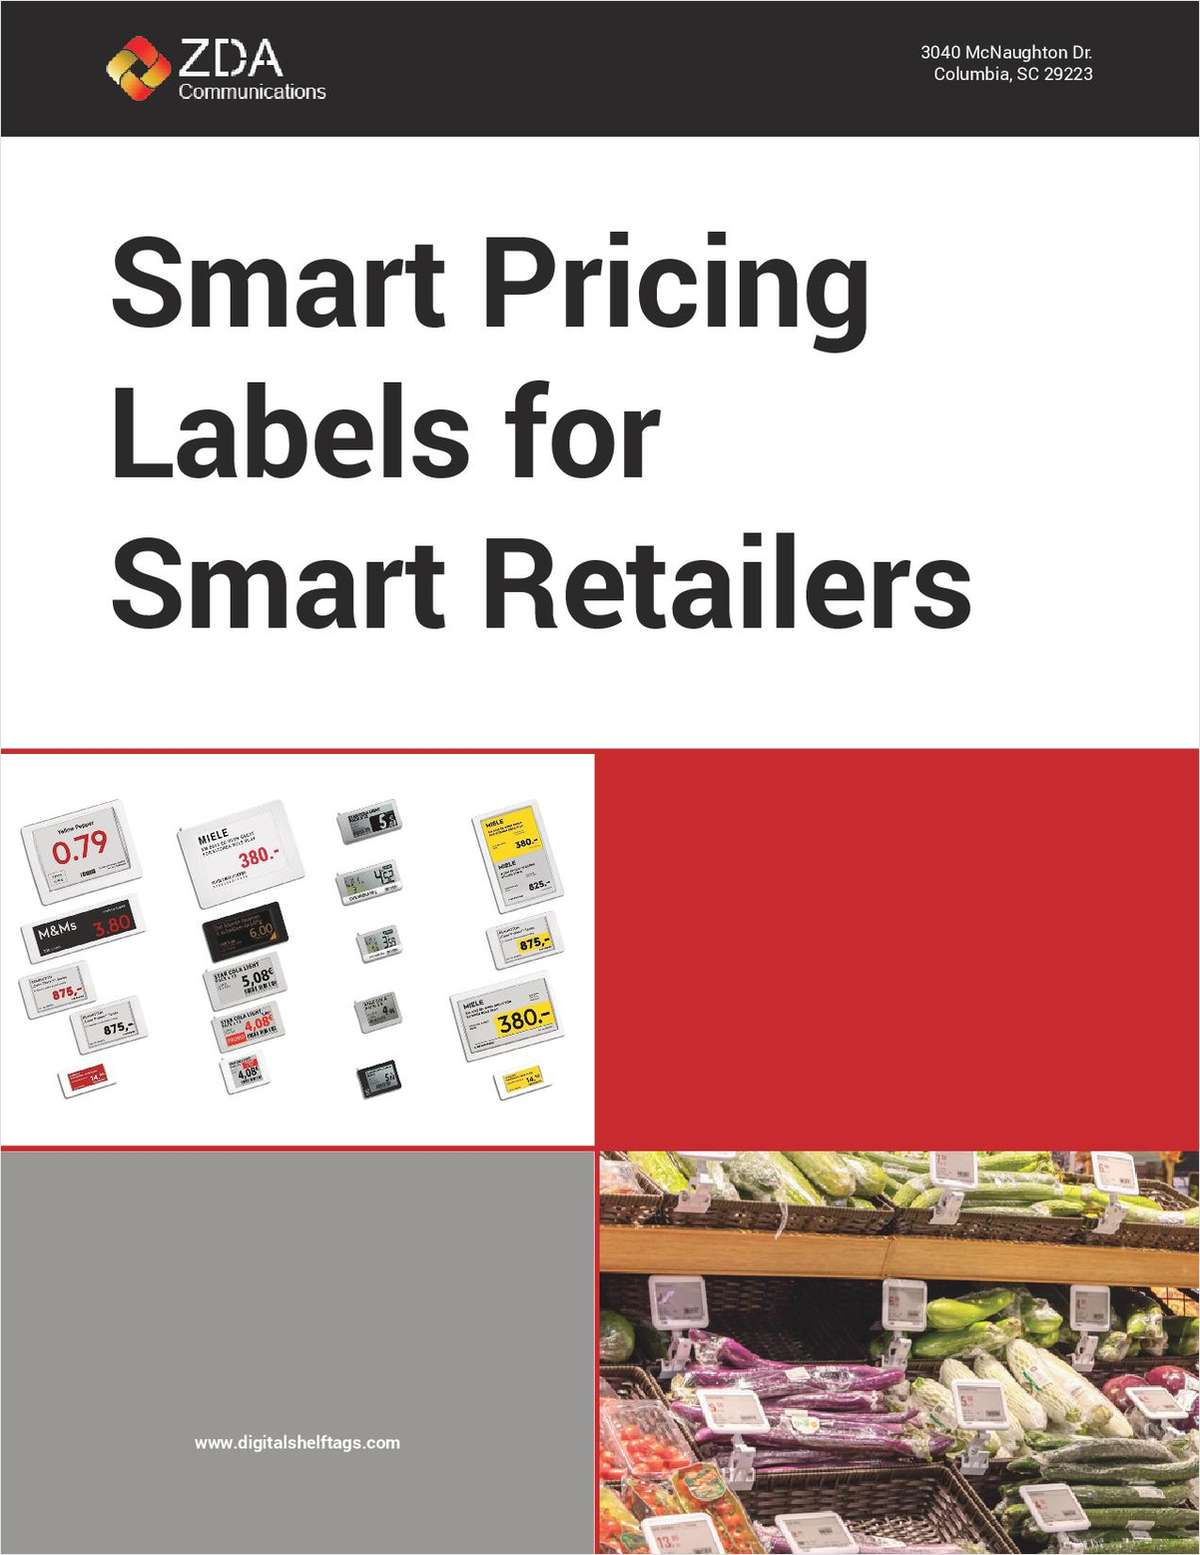 Smart Pricing Labels for Smart Retailers